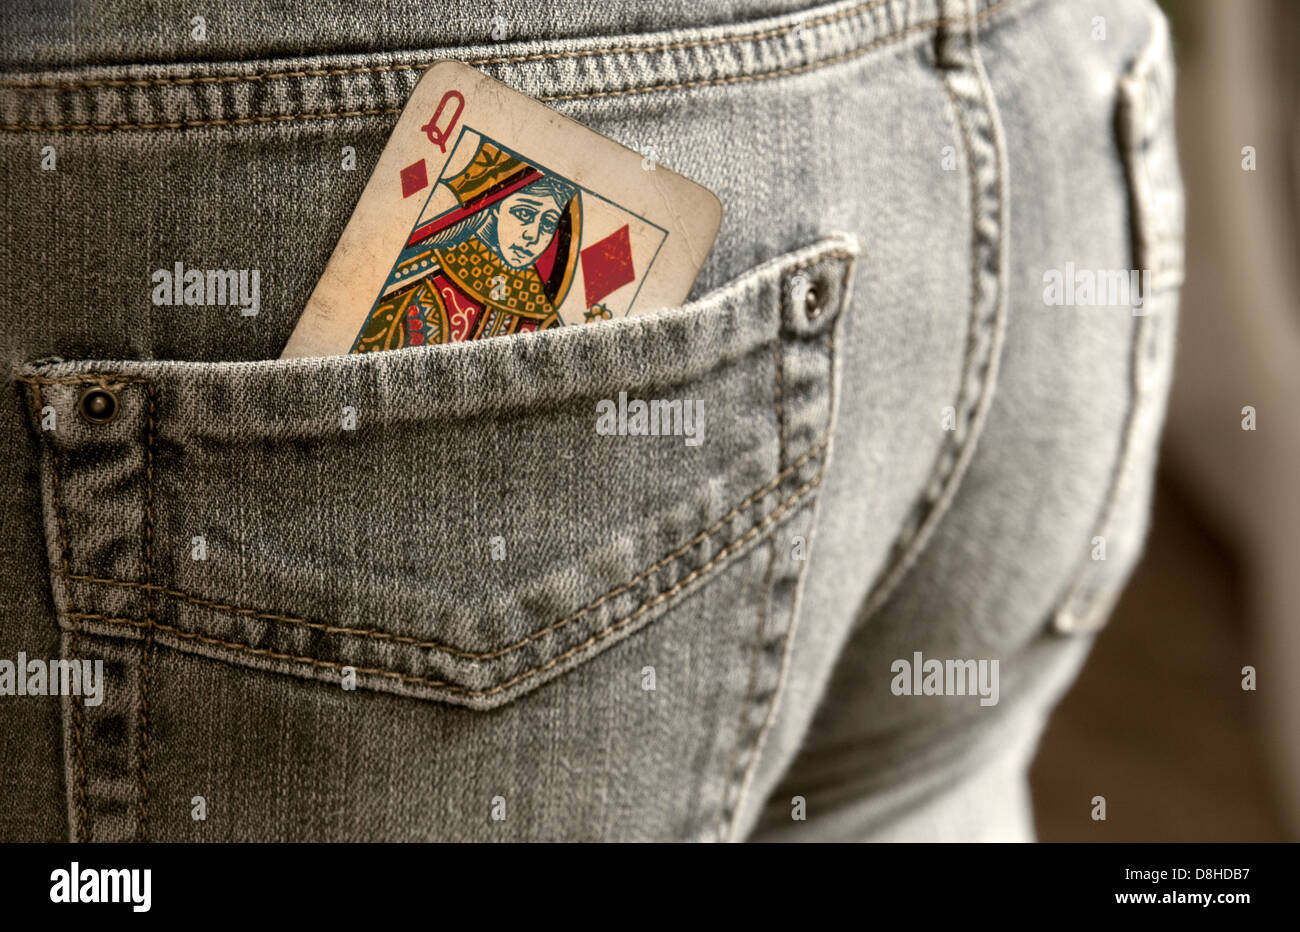 back,pocket,of,a,pair,of,jeans,FOBM,fixed,odds,betting,machines,machine,game,of,chance,lady,female,bottom,arse,bum,red,Q,Gotonysmith,Buy Pictures of,Buy Images Of